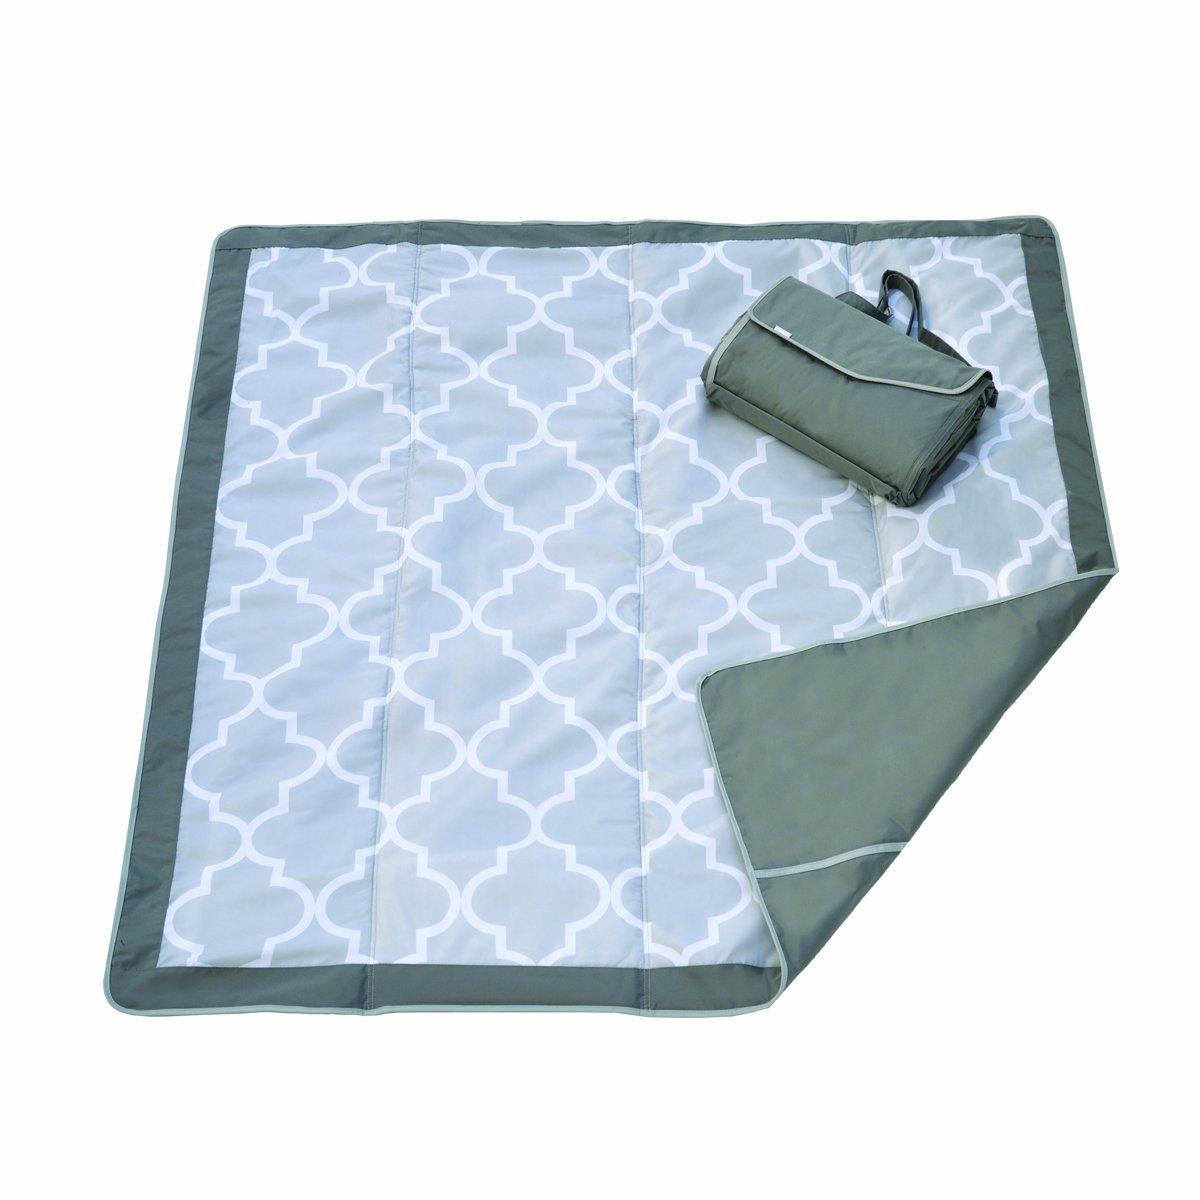 Jj Cole Outdoor Blanket, 5'X'5 Stone Arbor by JJ Cole